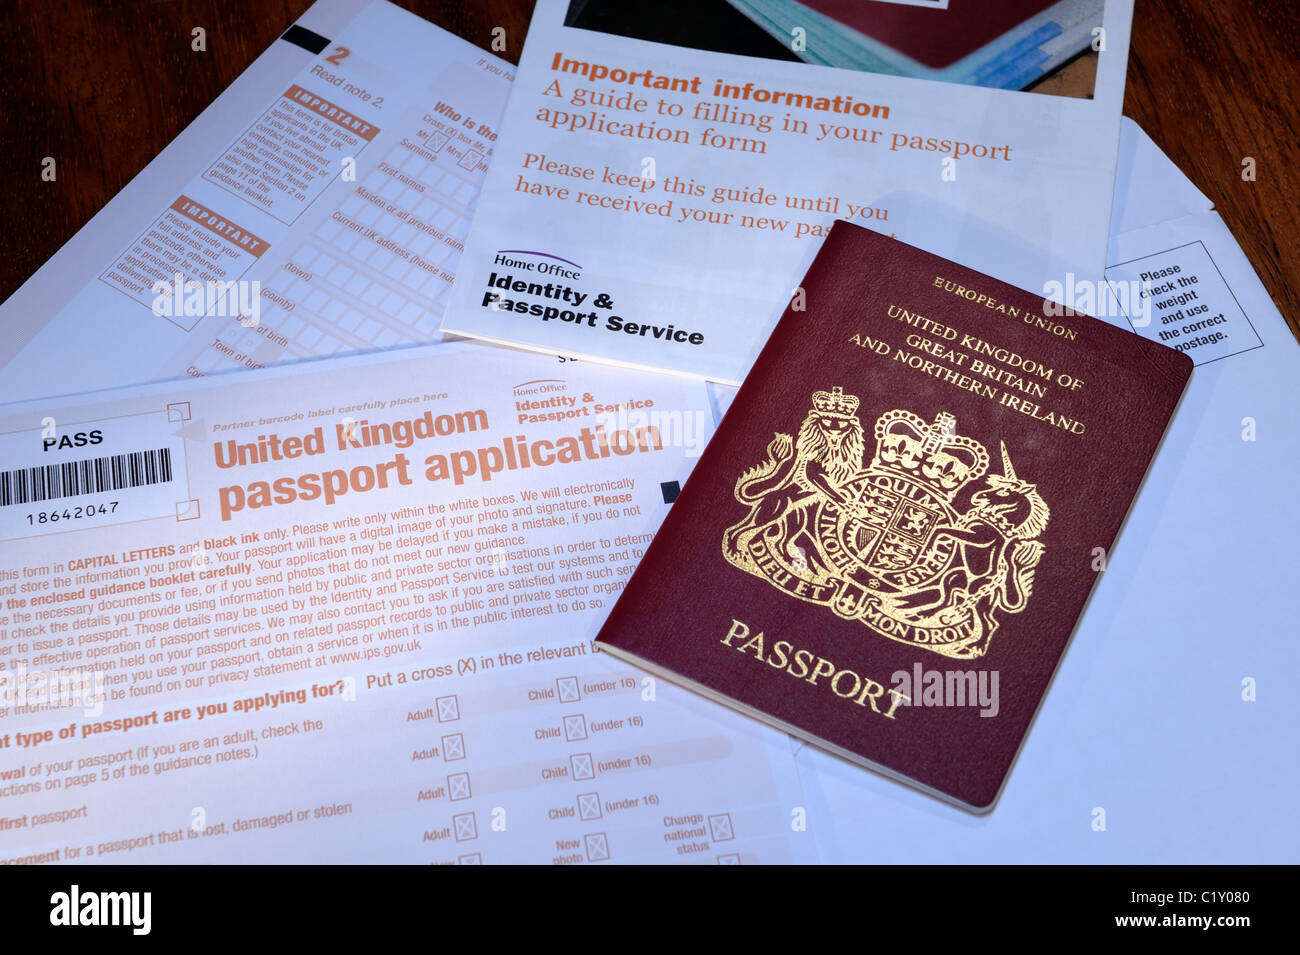 Passport application form stock photos passport application form uk passport application form stock image falaconquin